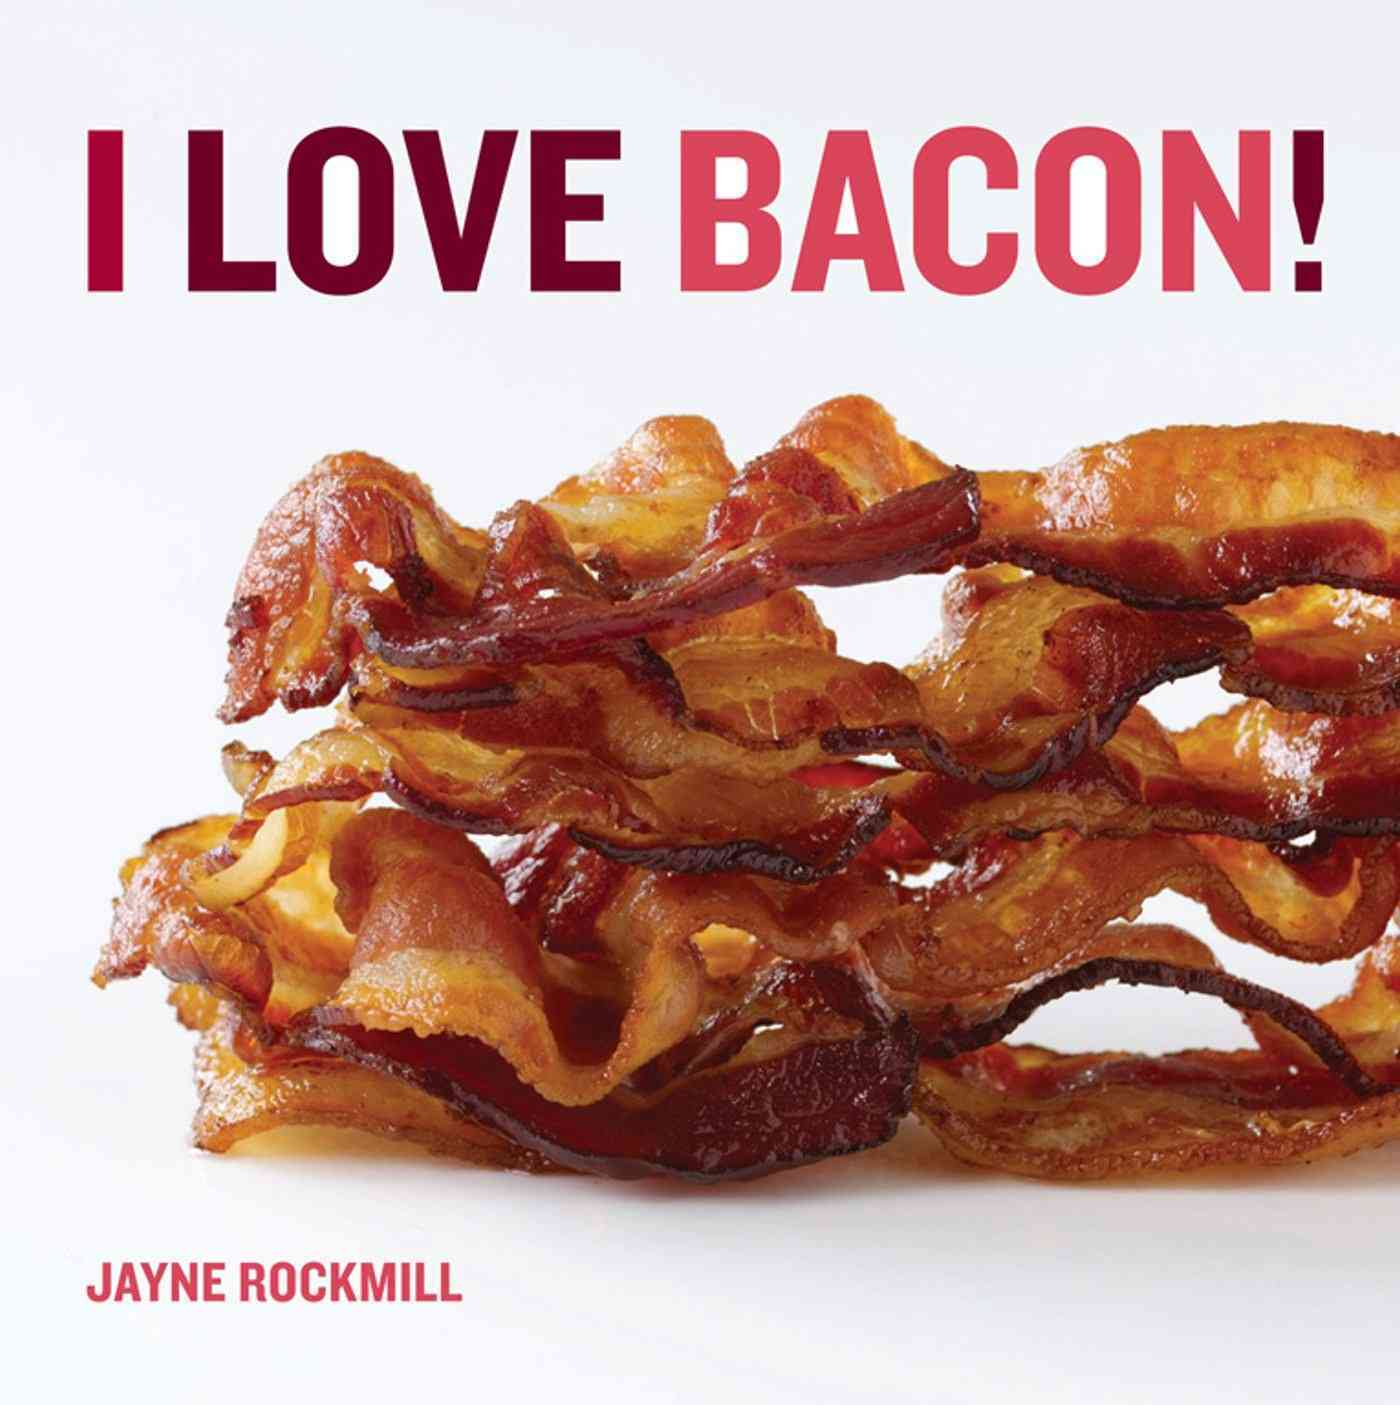 I Love Bacon! (Hardcover) - Thumbnail 0